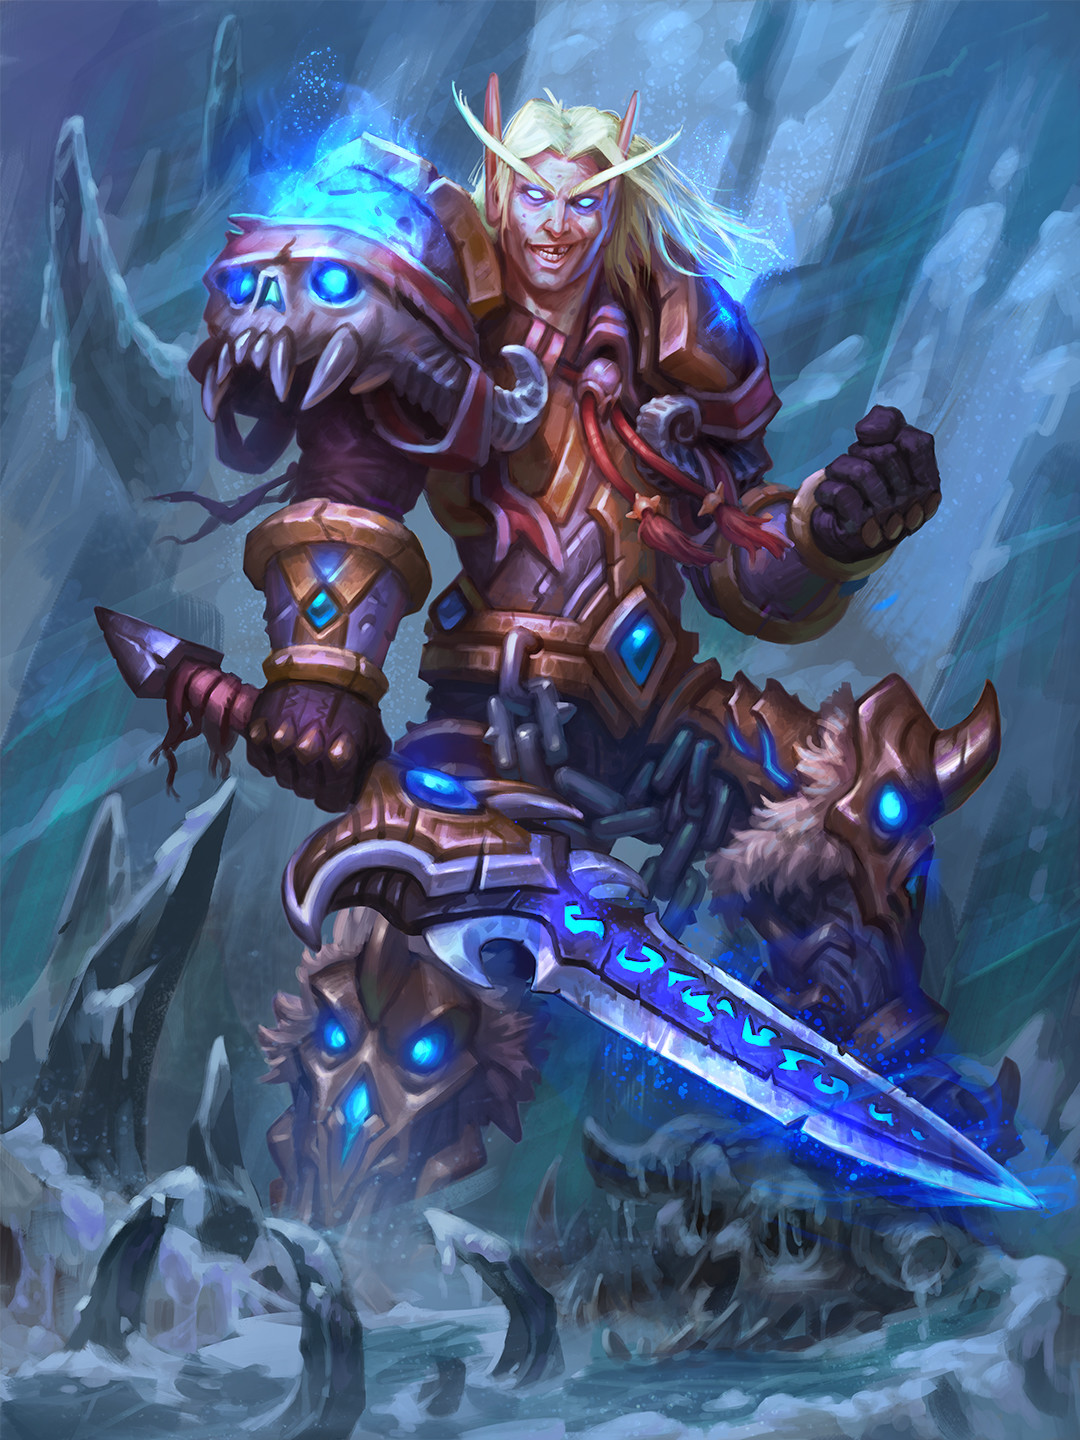 Knight Of Wands As Advice: Knights Of The Frozen Throne Guide, Release Date, Card